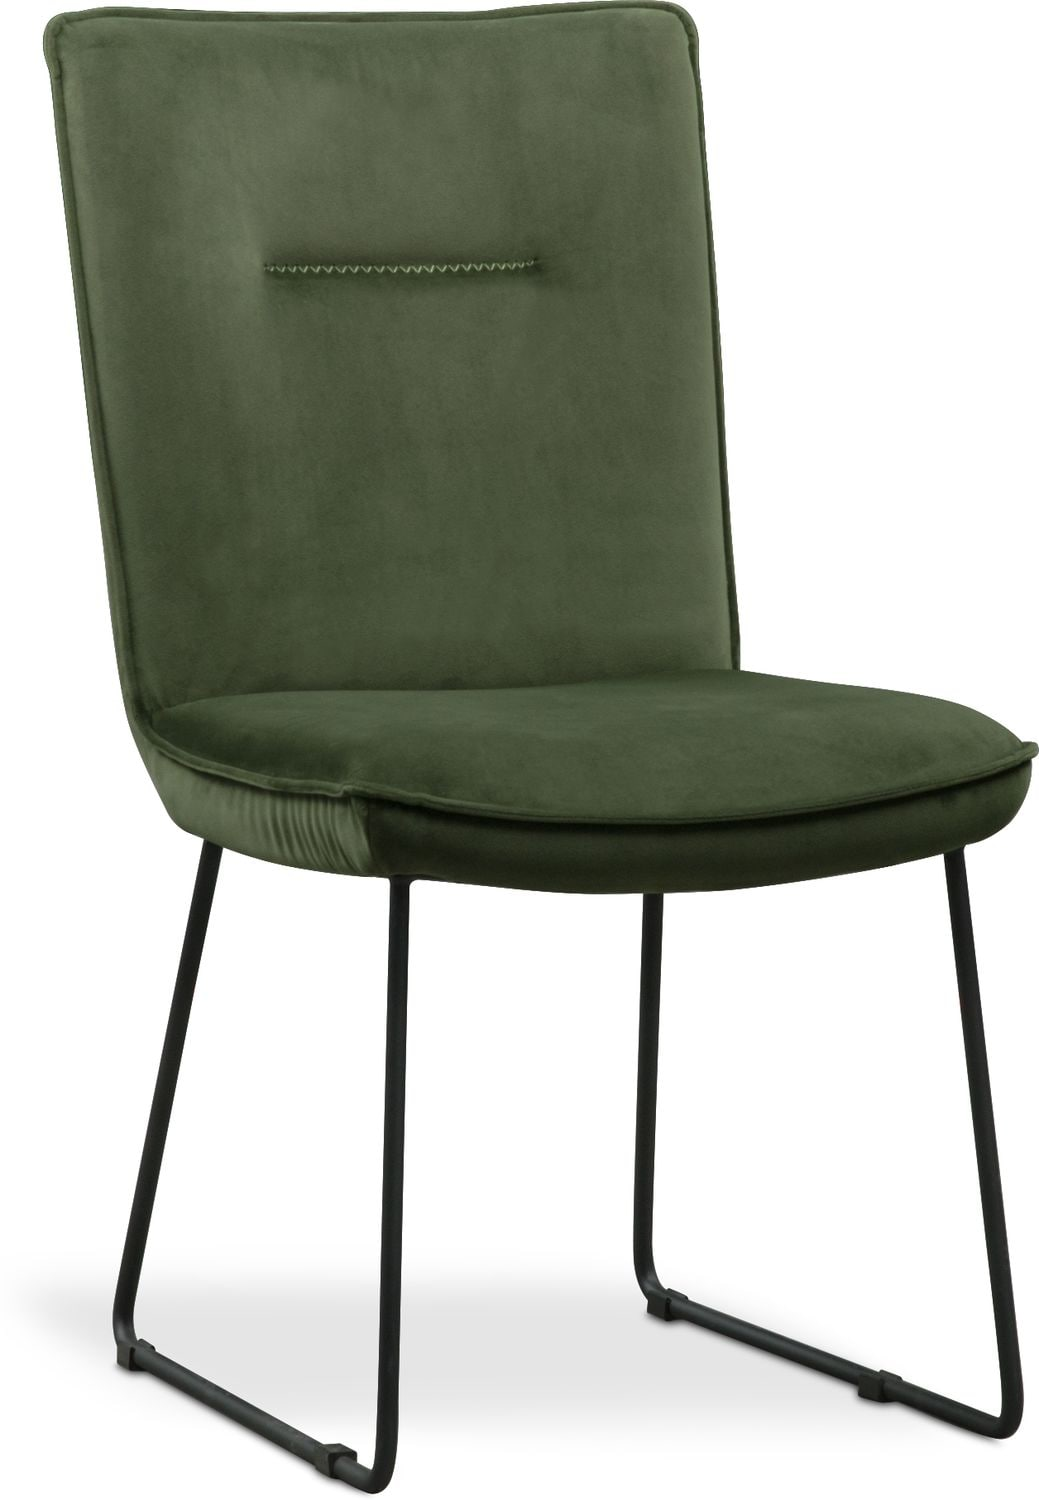 Green Upholstered Chair Portland Upholstered Side Chair Hunter Green